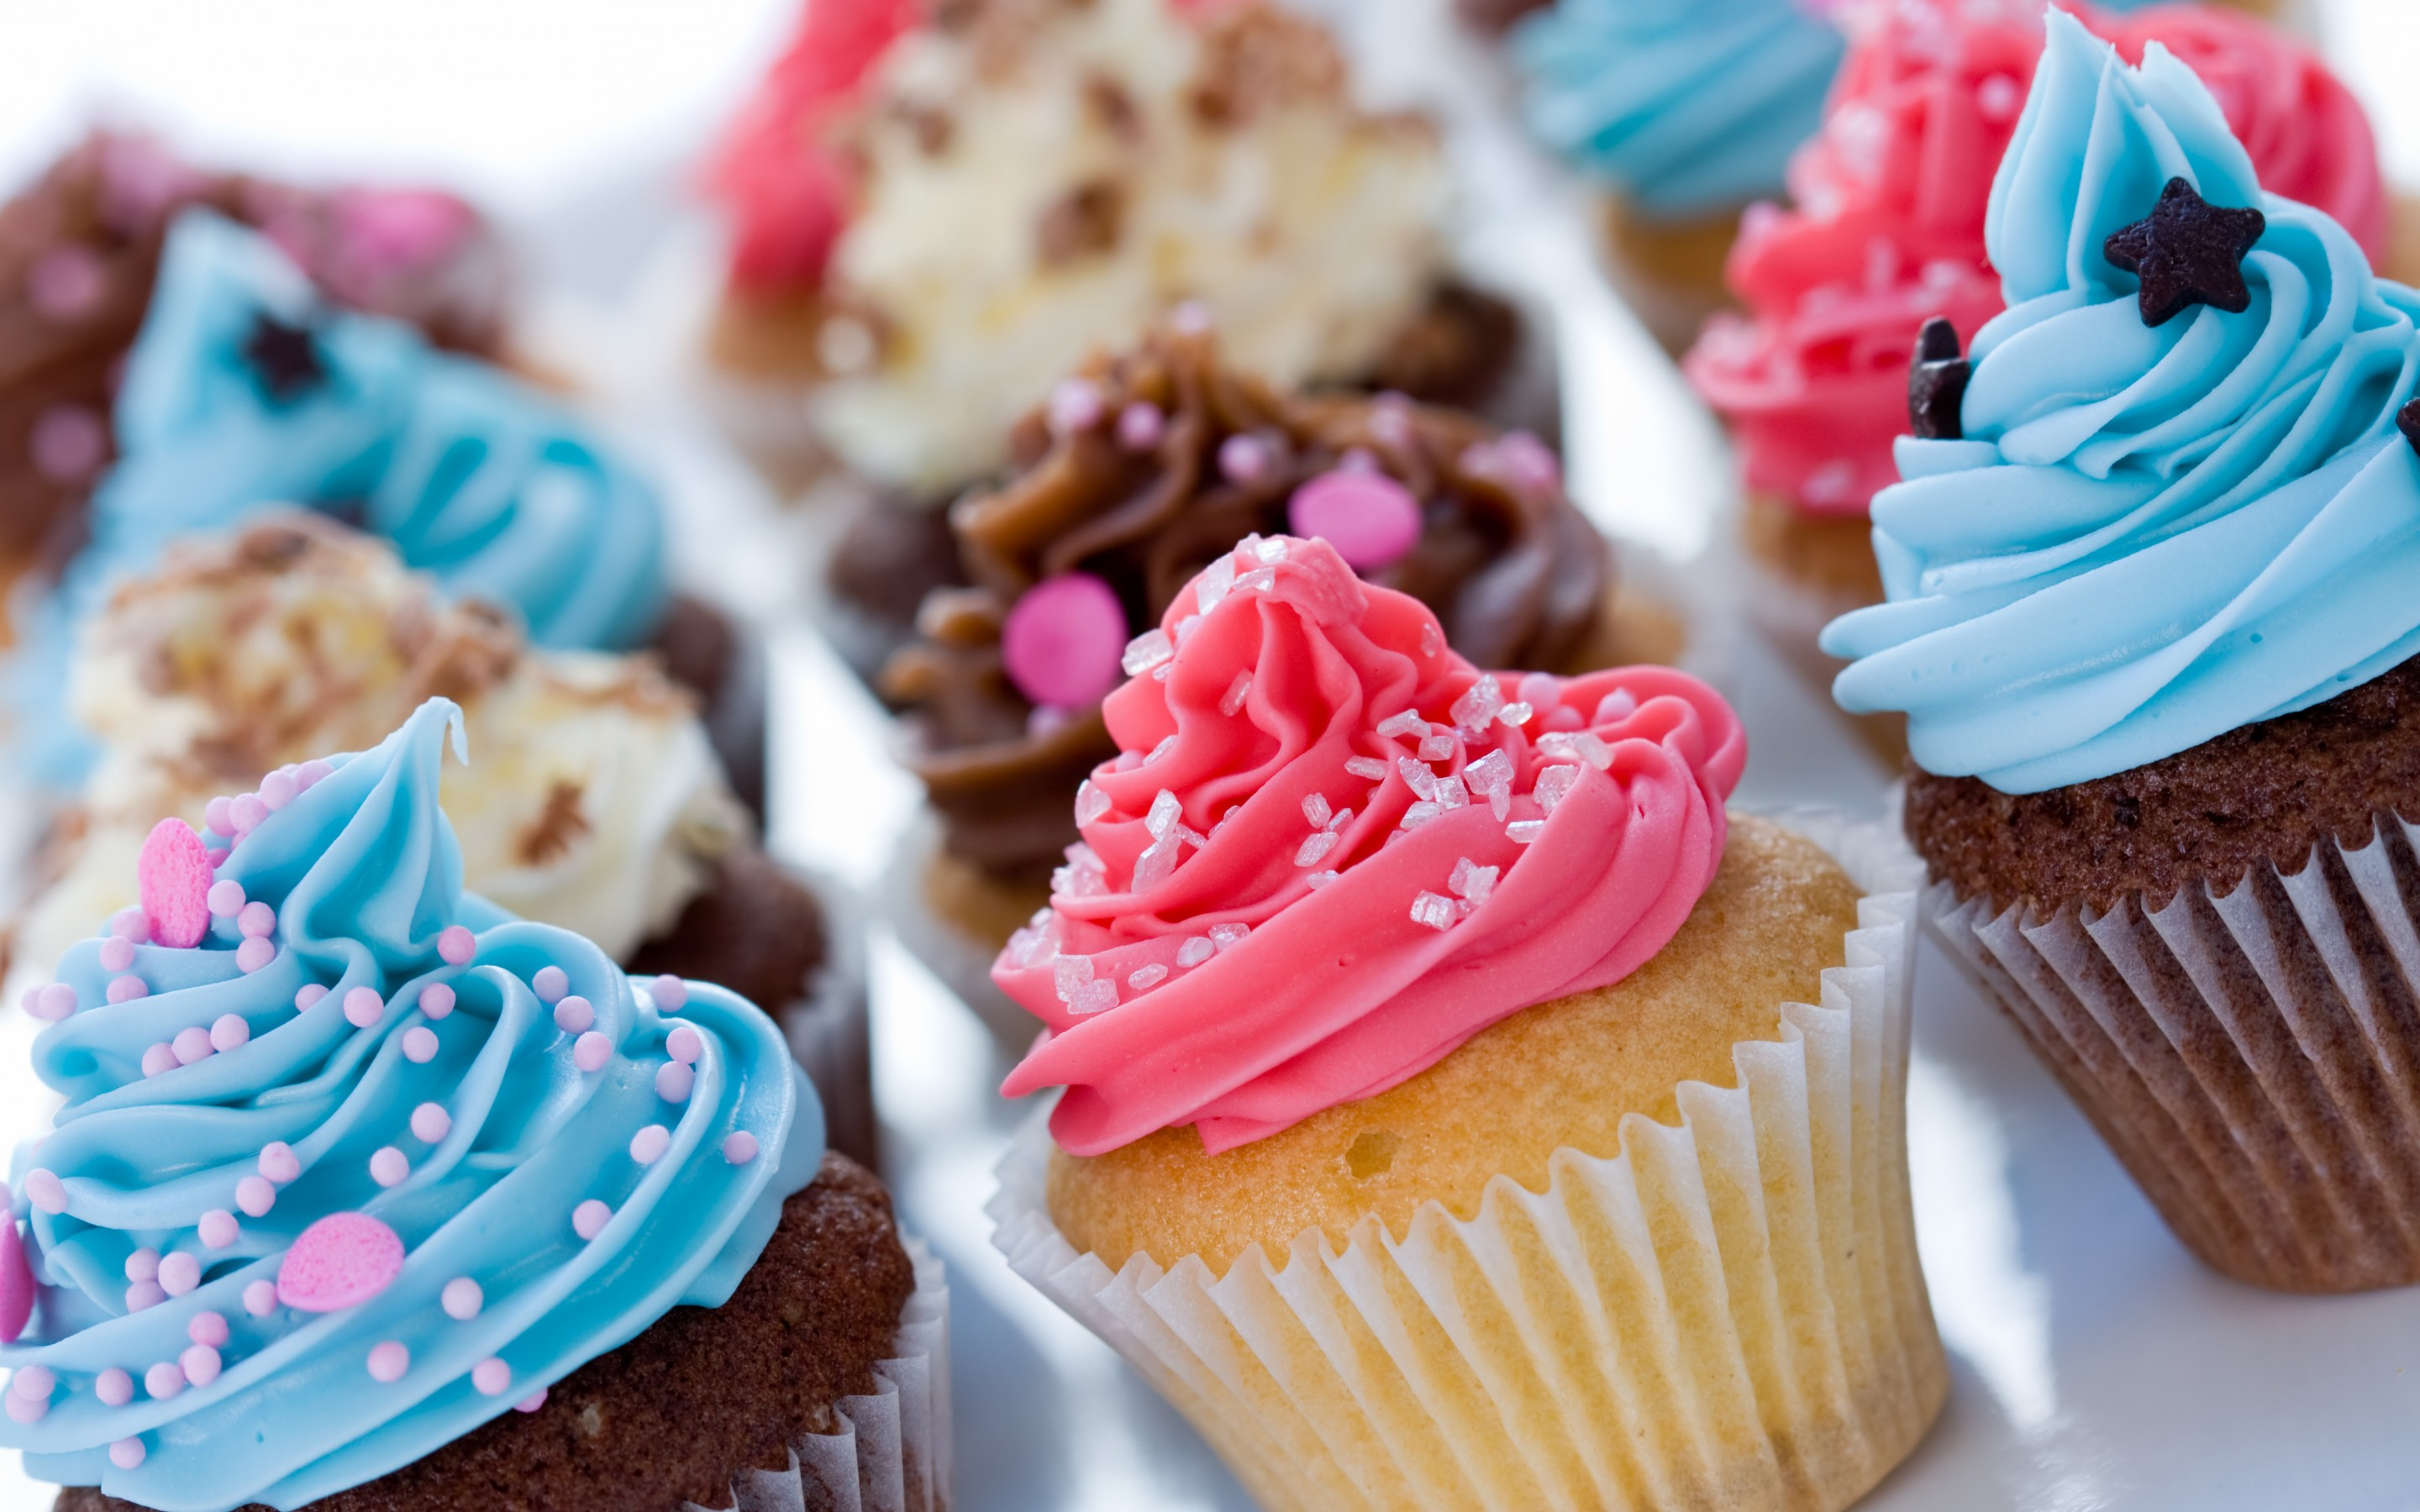 Food Sale: Cupcake Full HD Wallpaper And Background Image